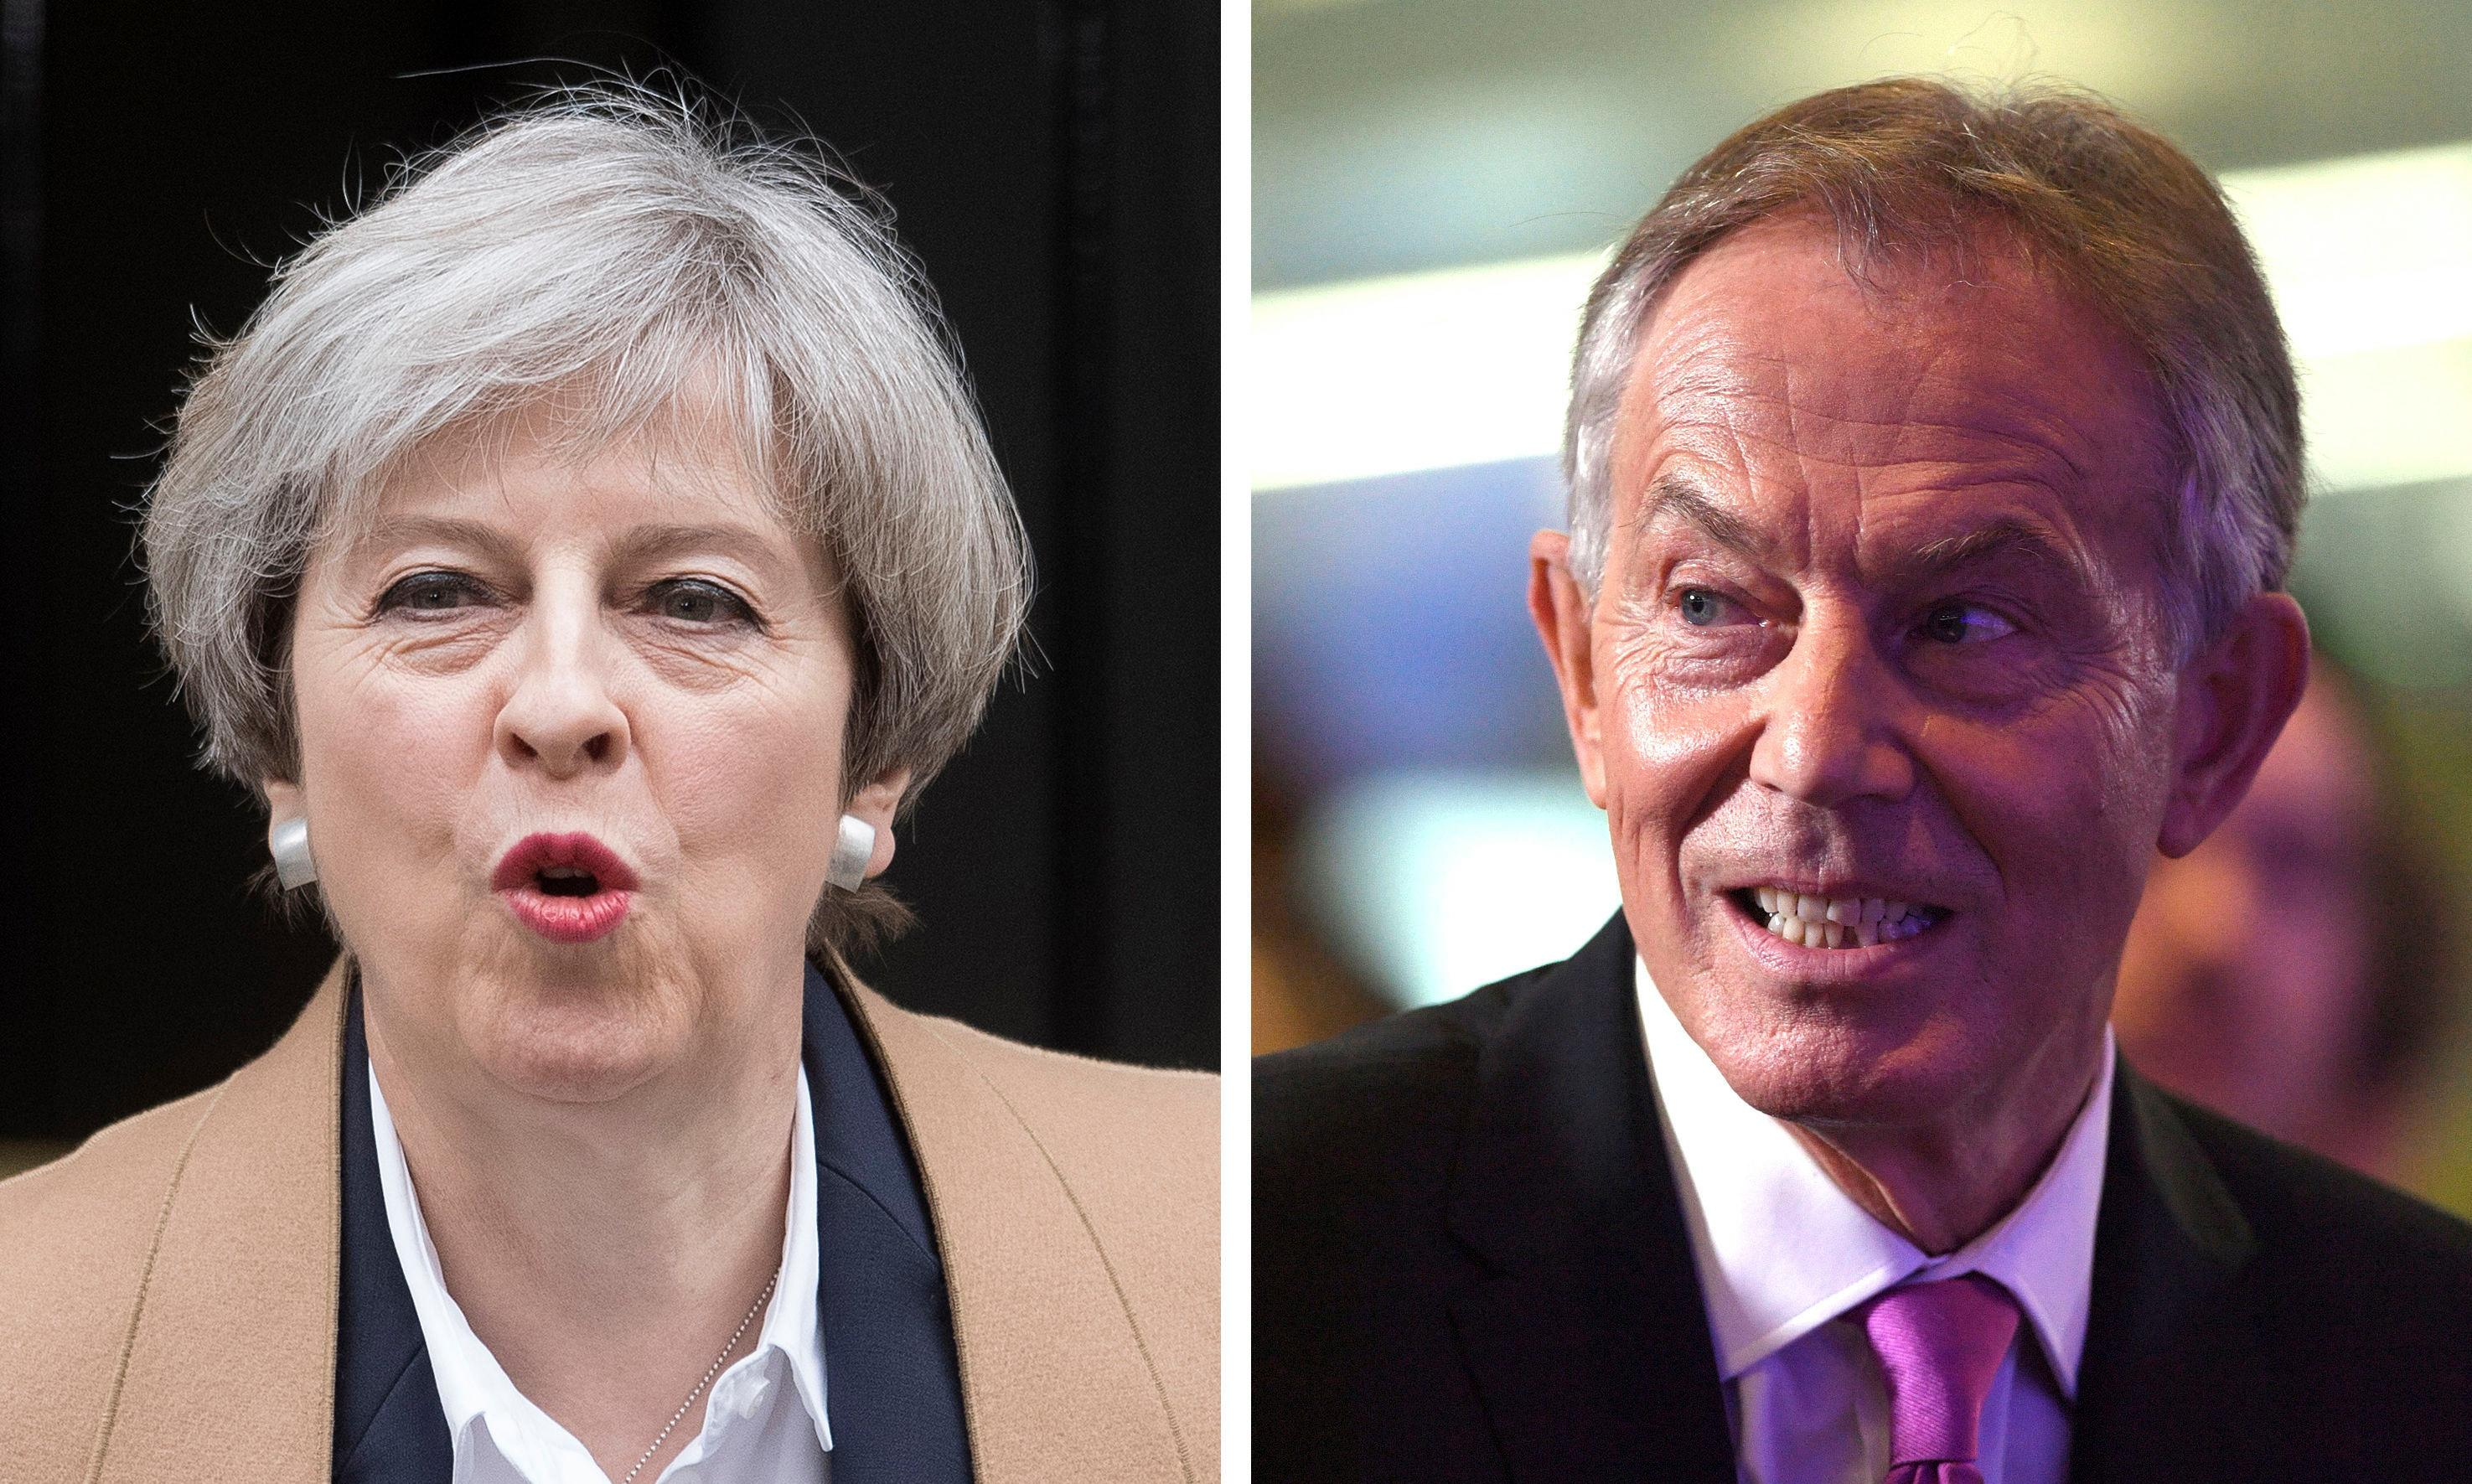 Blair claims May's deal not in national interest amid public Brexit spat